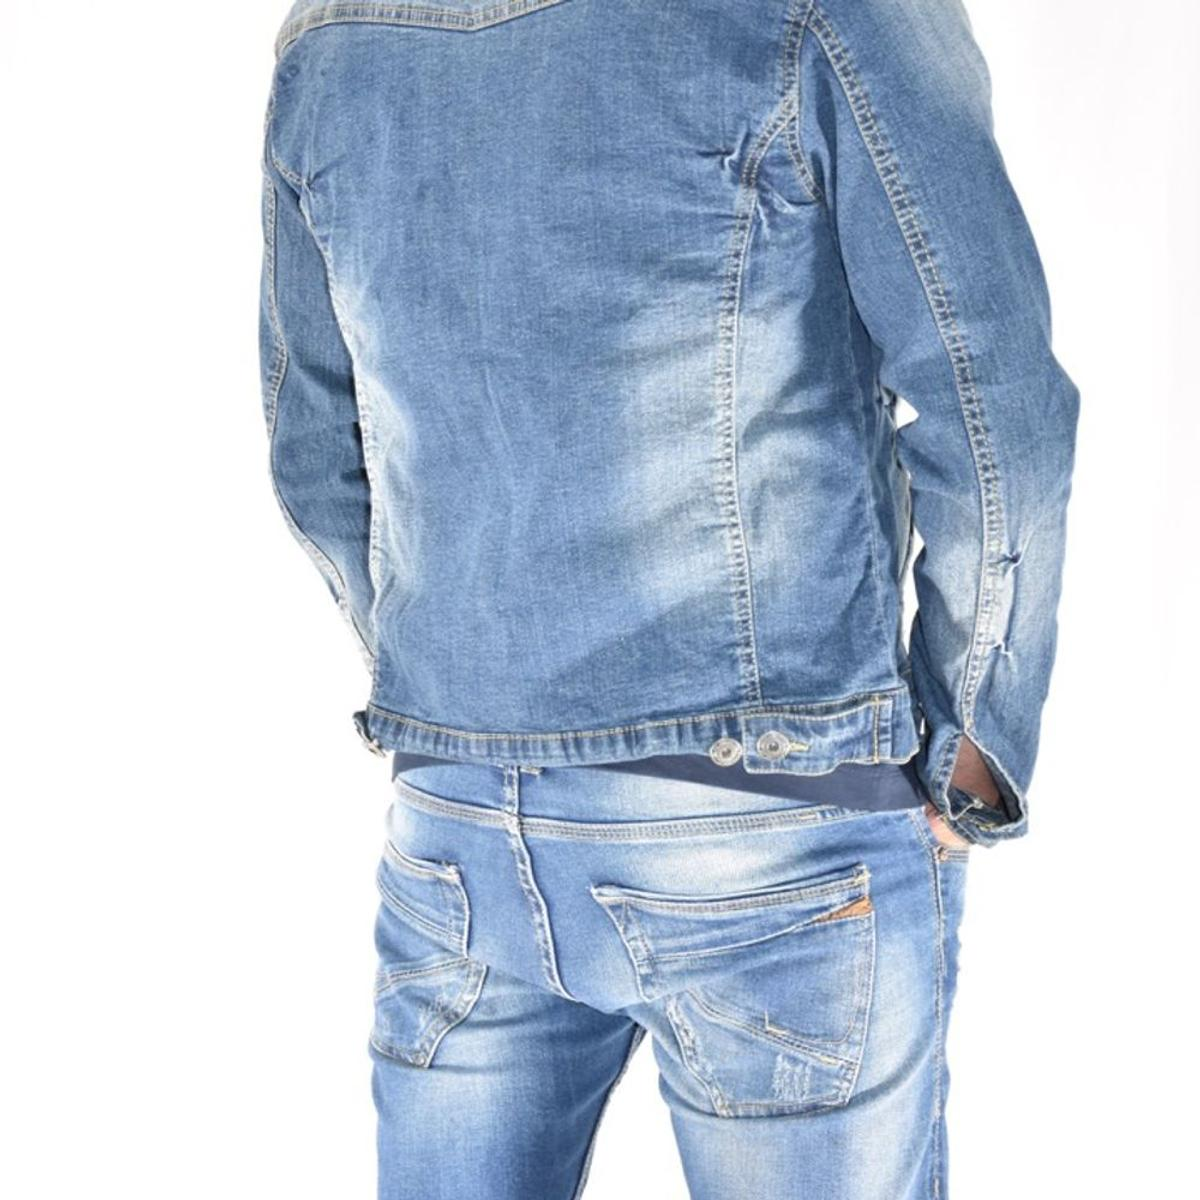 new products 1fb1f 18f0b Herren Jeansjacke